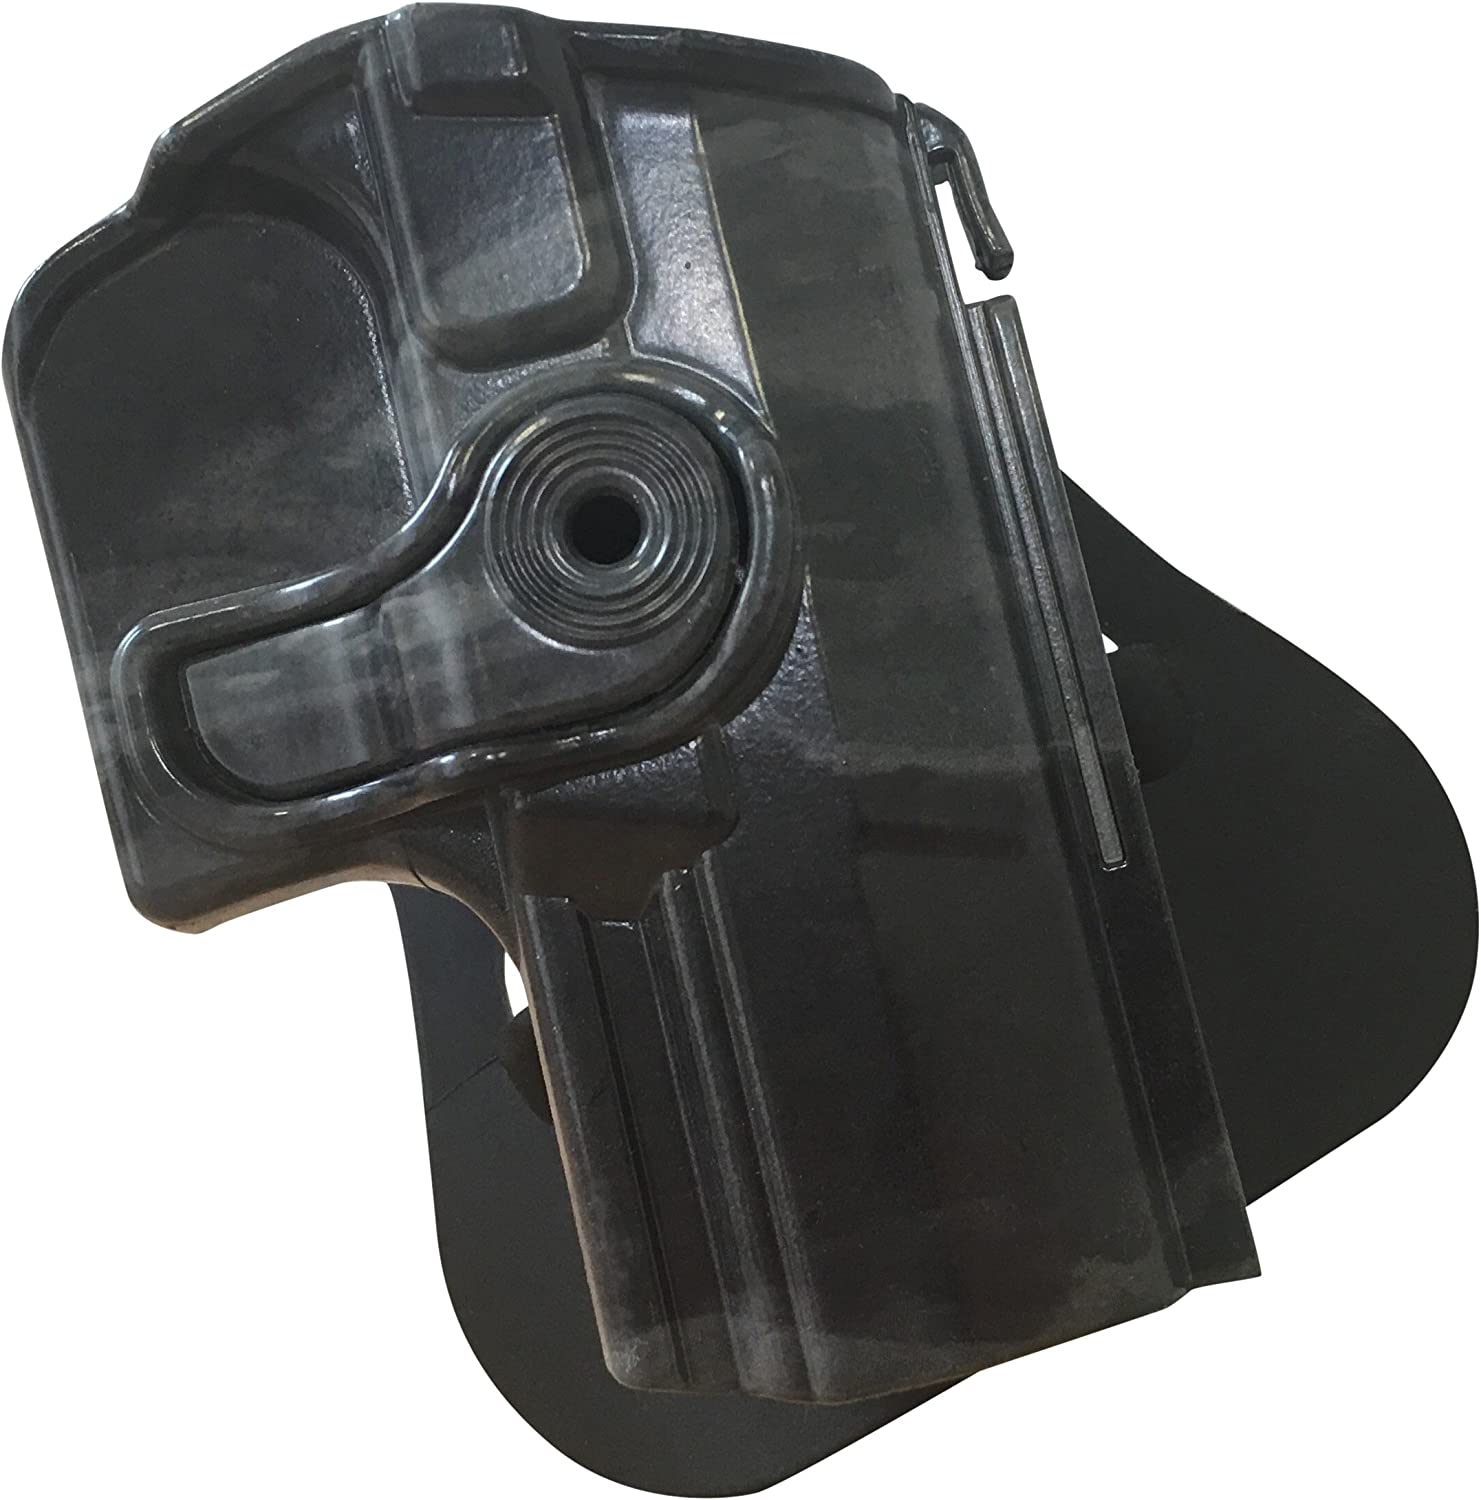 IMI Walther PPQ Polymer Retention Holster